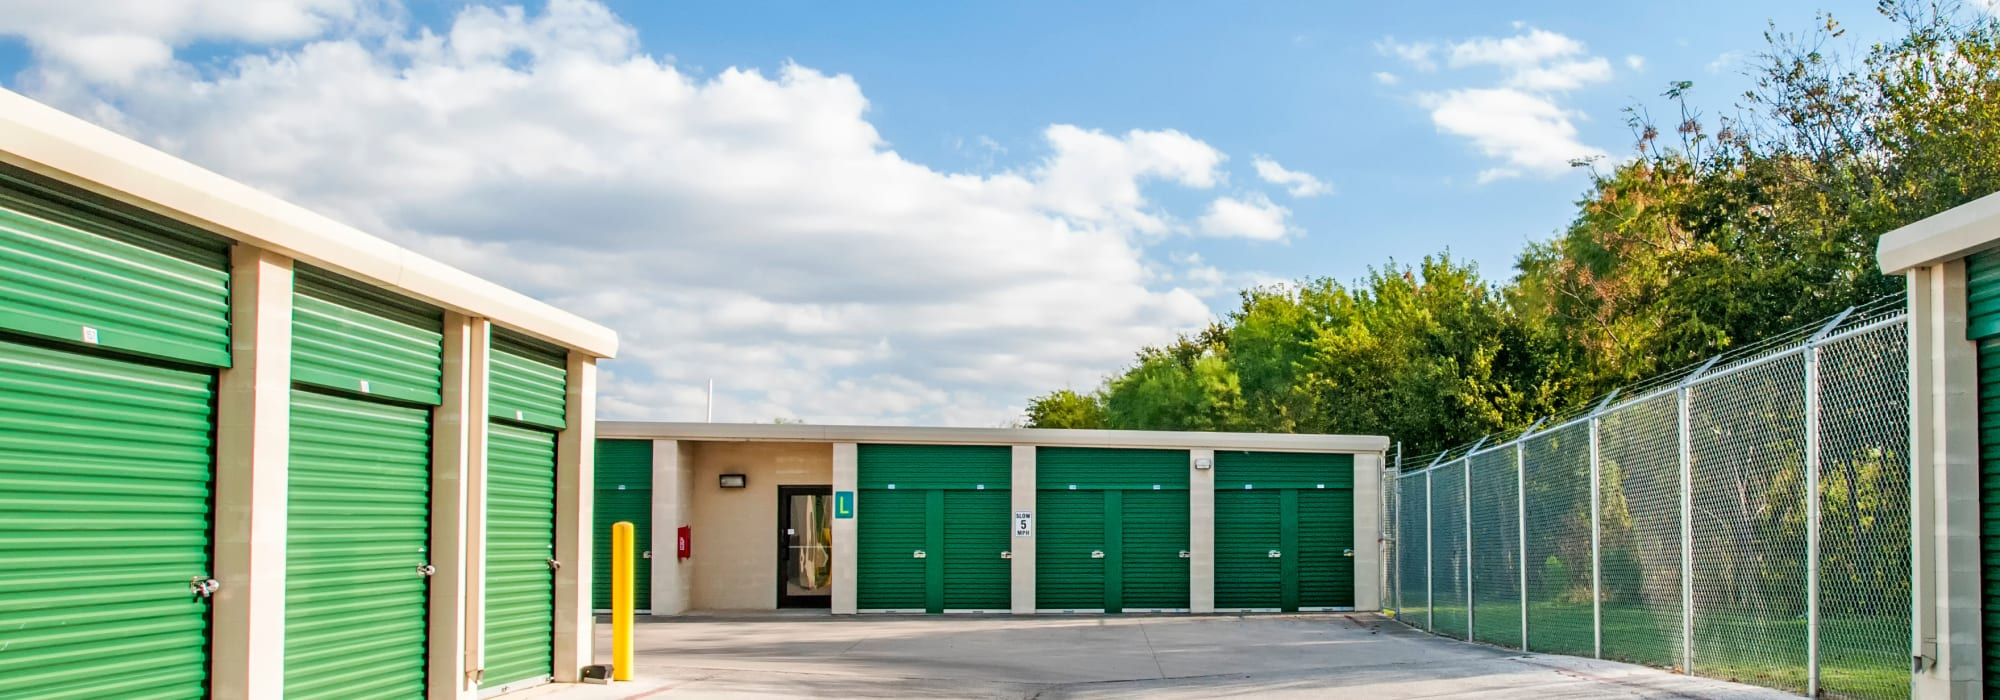 Lockaway Storage in San Antonio, Texas